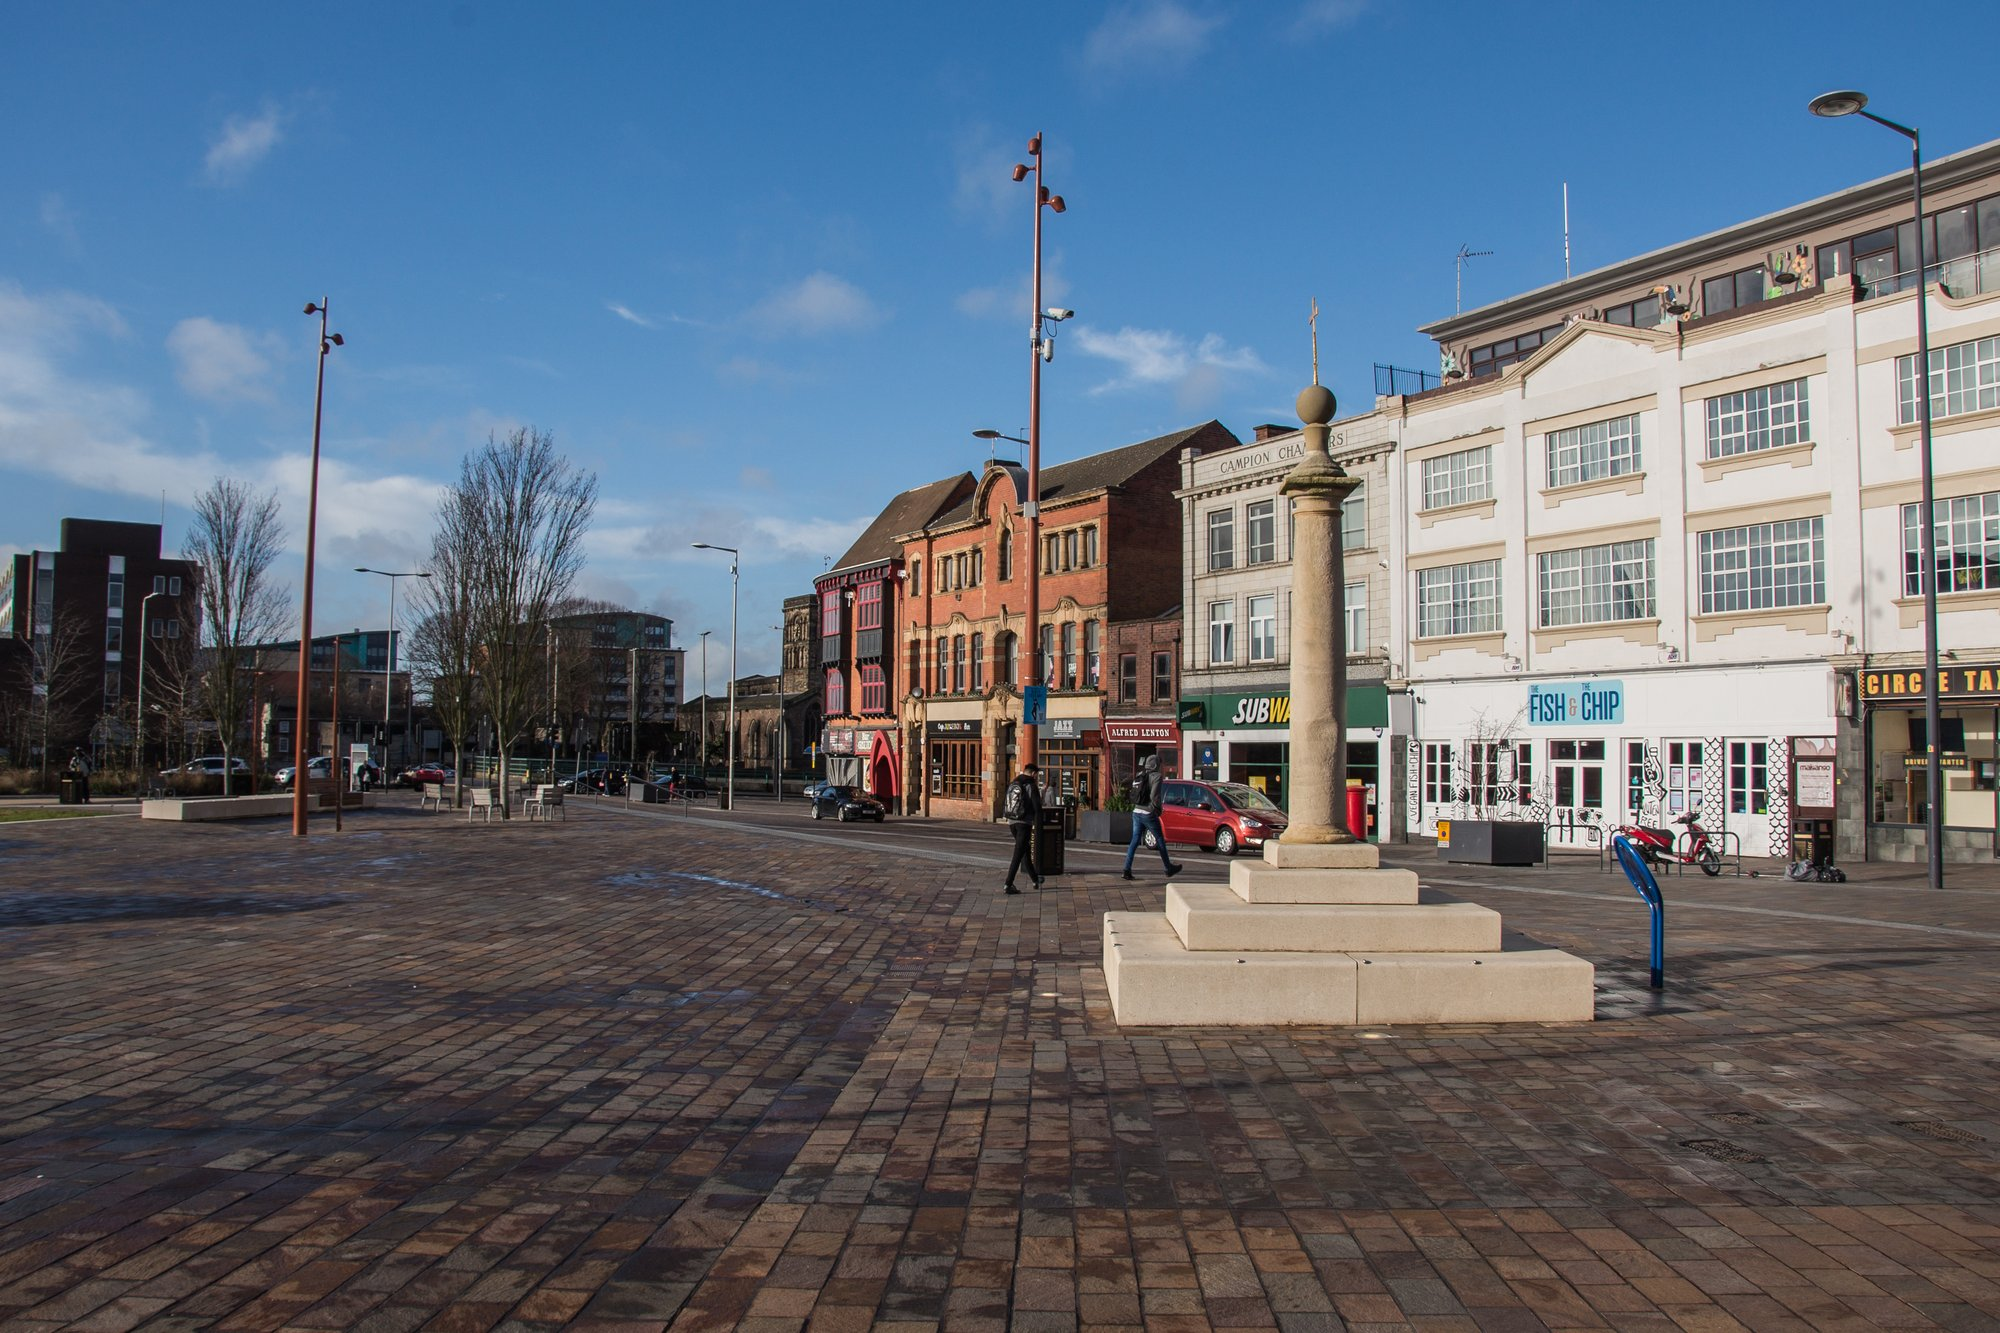 The remaining High Cross pillar as it looks today in Jubilee Square -